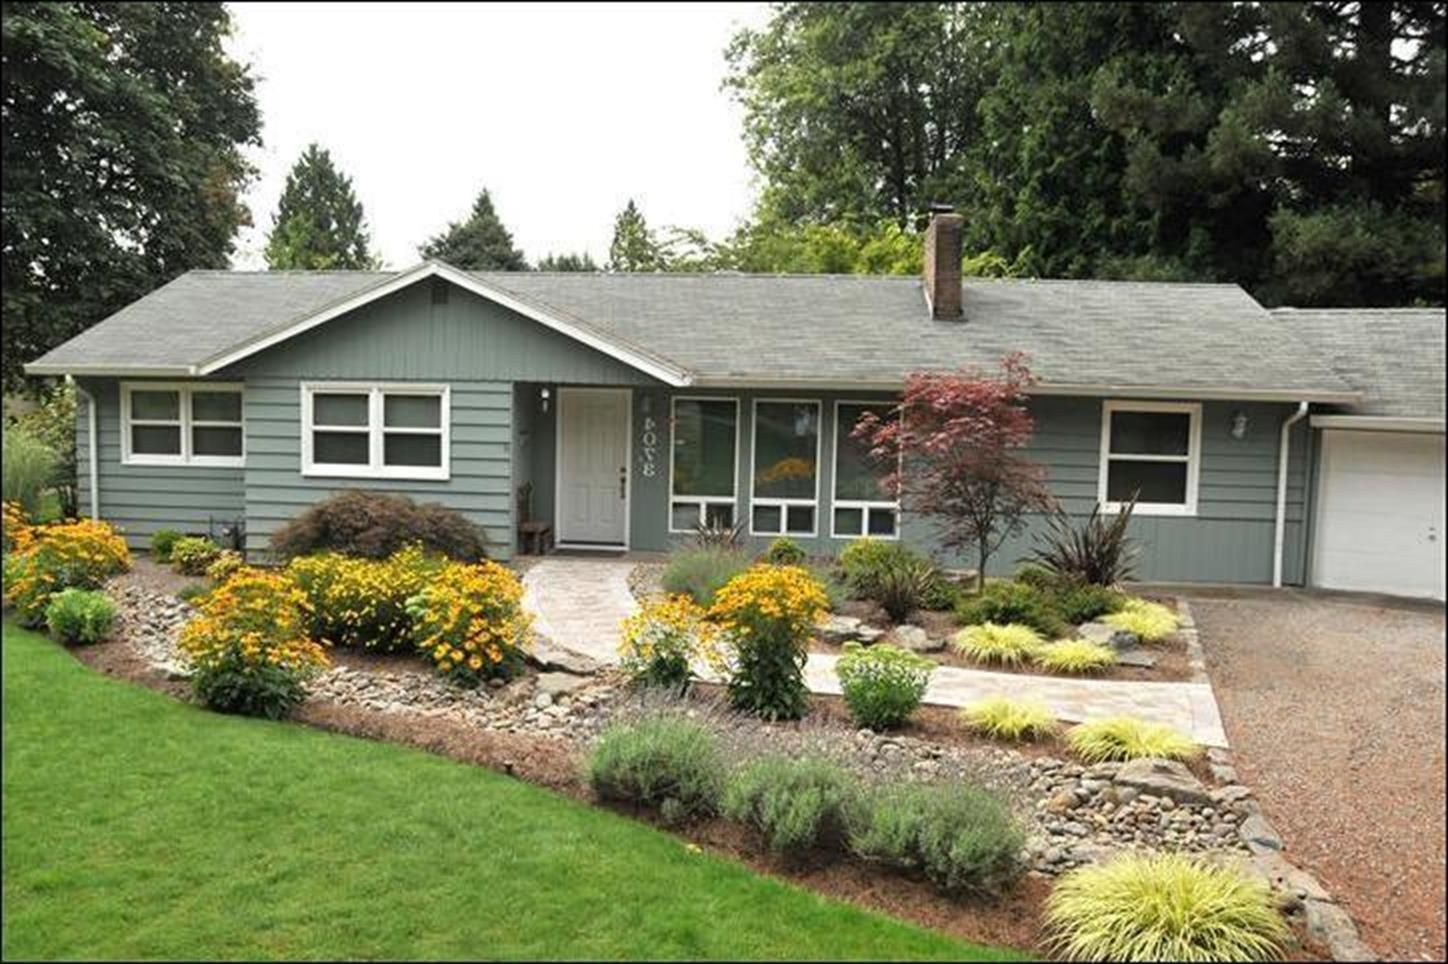 15 best ranch homes landscaping ideas 1 with images on front yard landscaping ideas id=13949